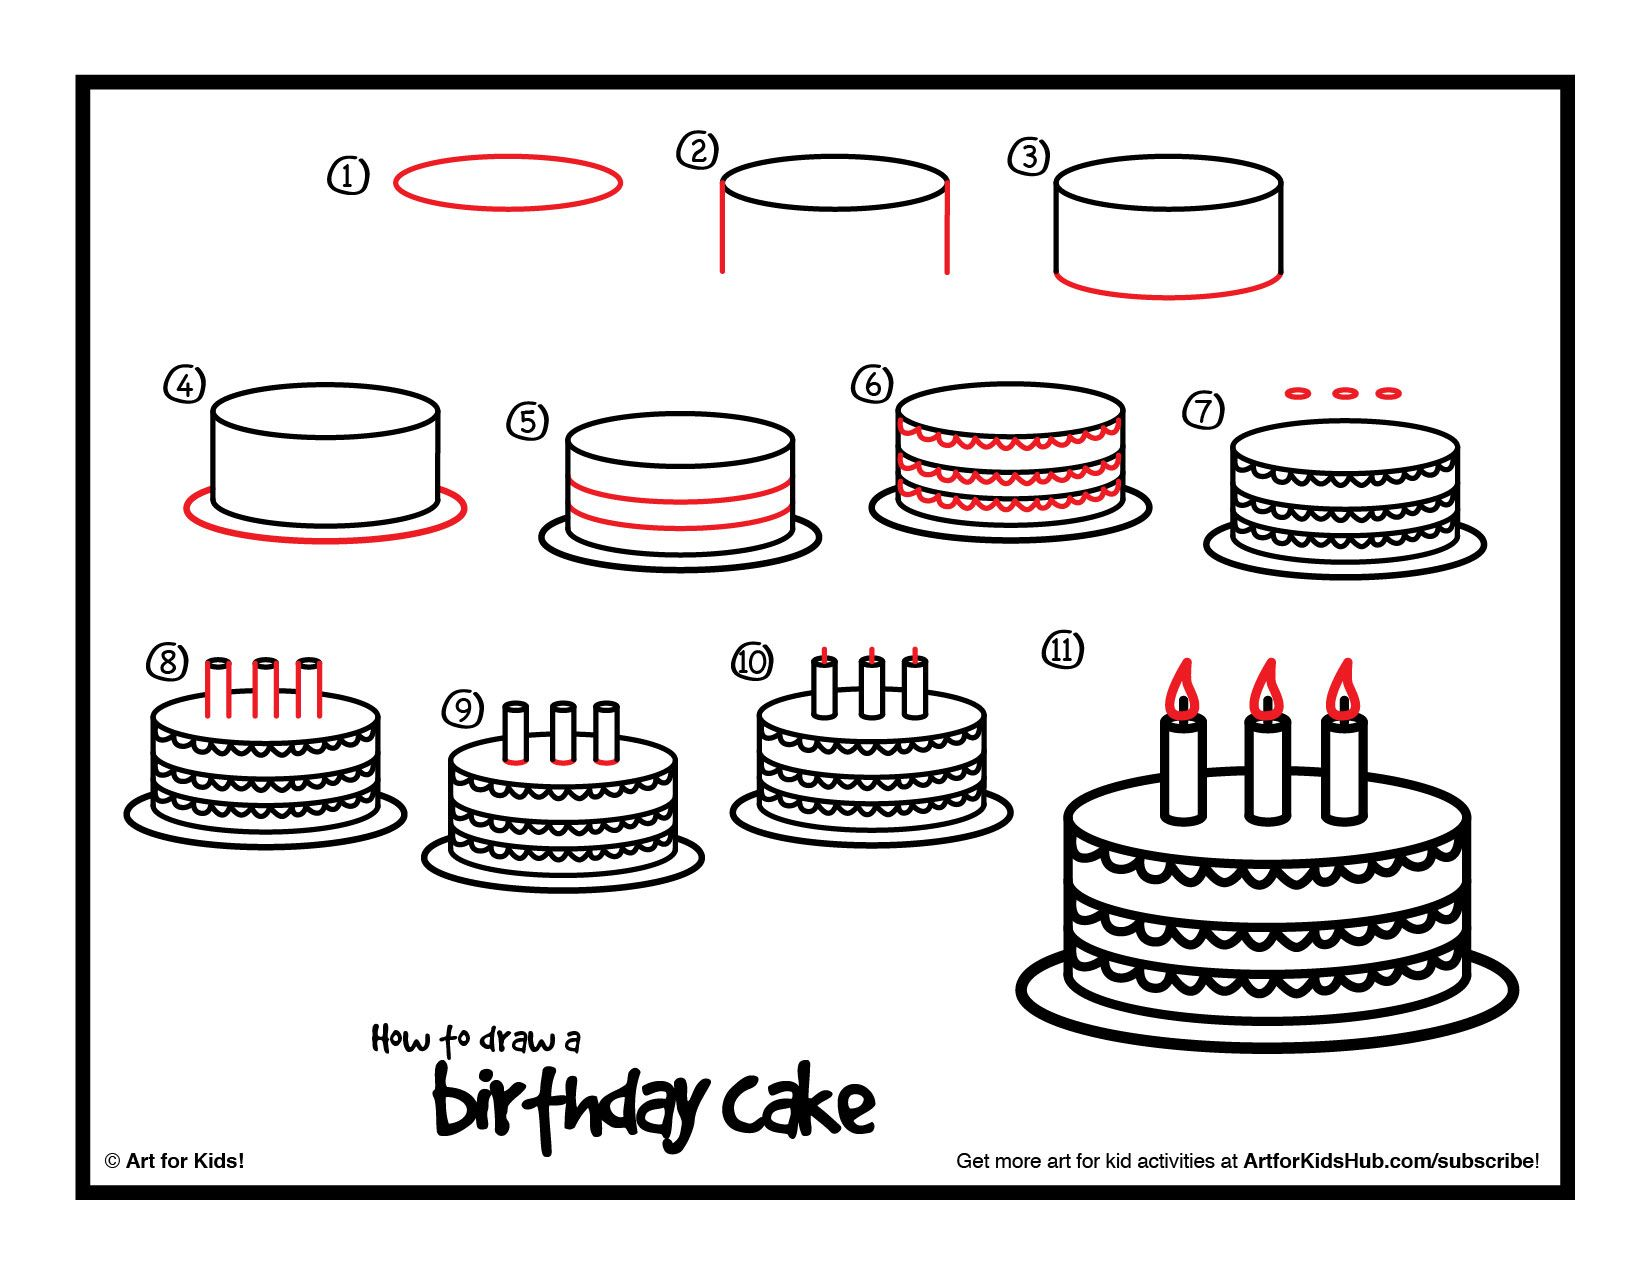 Download A Printable For How To Draw A Birthday Cake Plus See Step